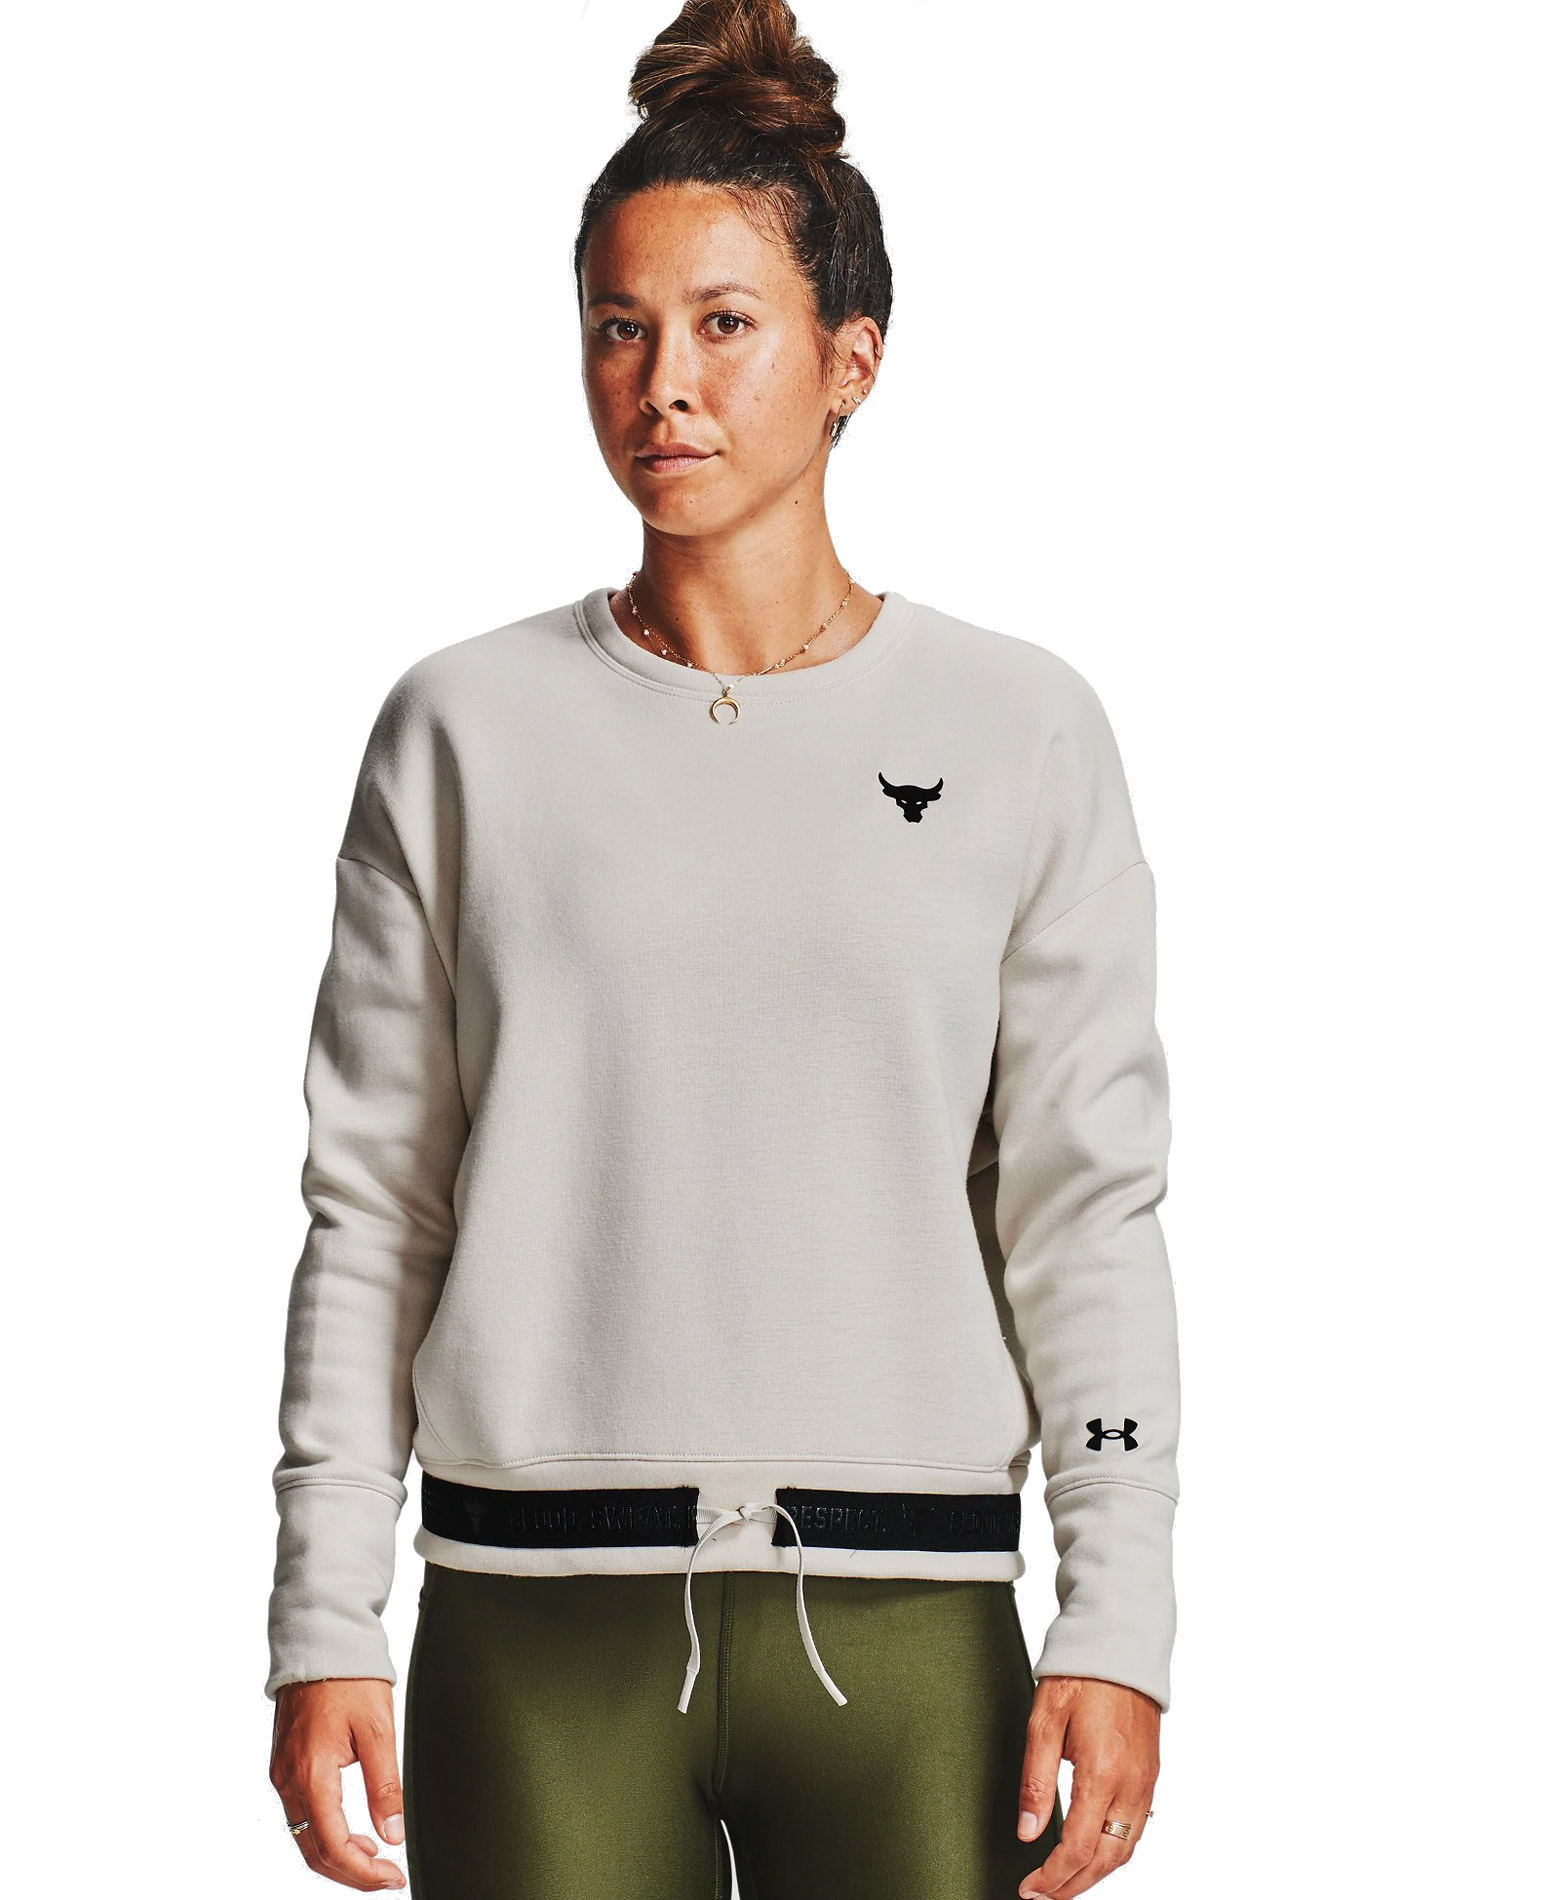 UNDER ARMOUR PRJCT ROCK CC FLEECE CREW SWEATER 1357059-110 Εκρού